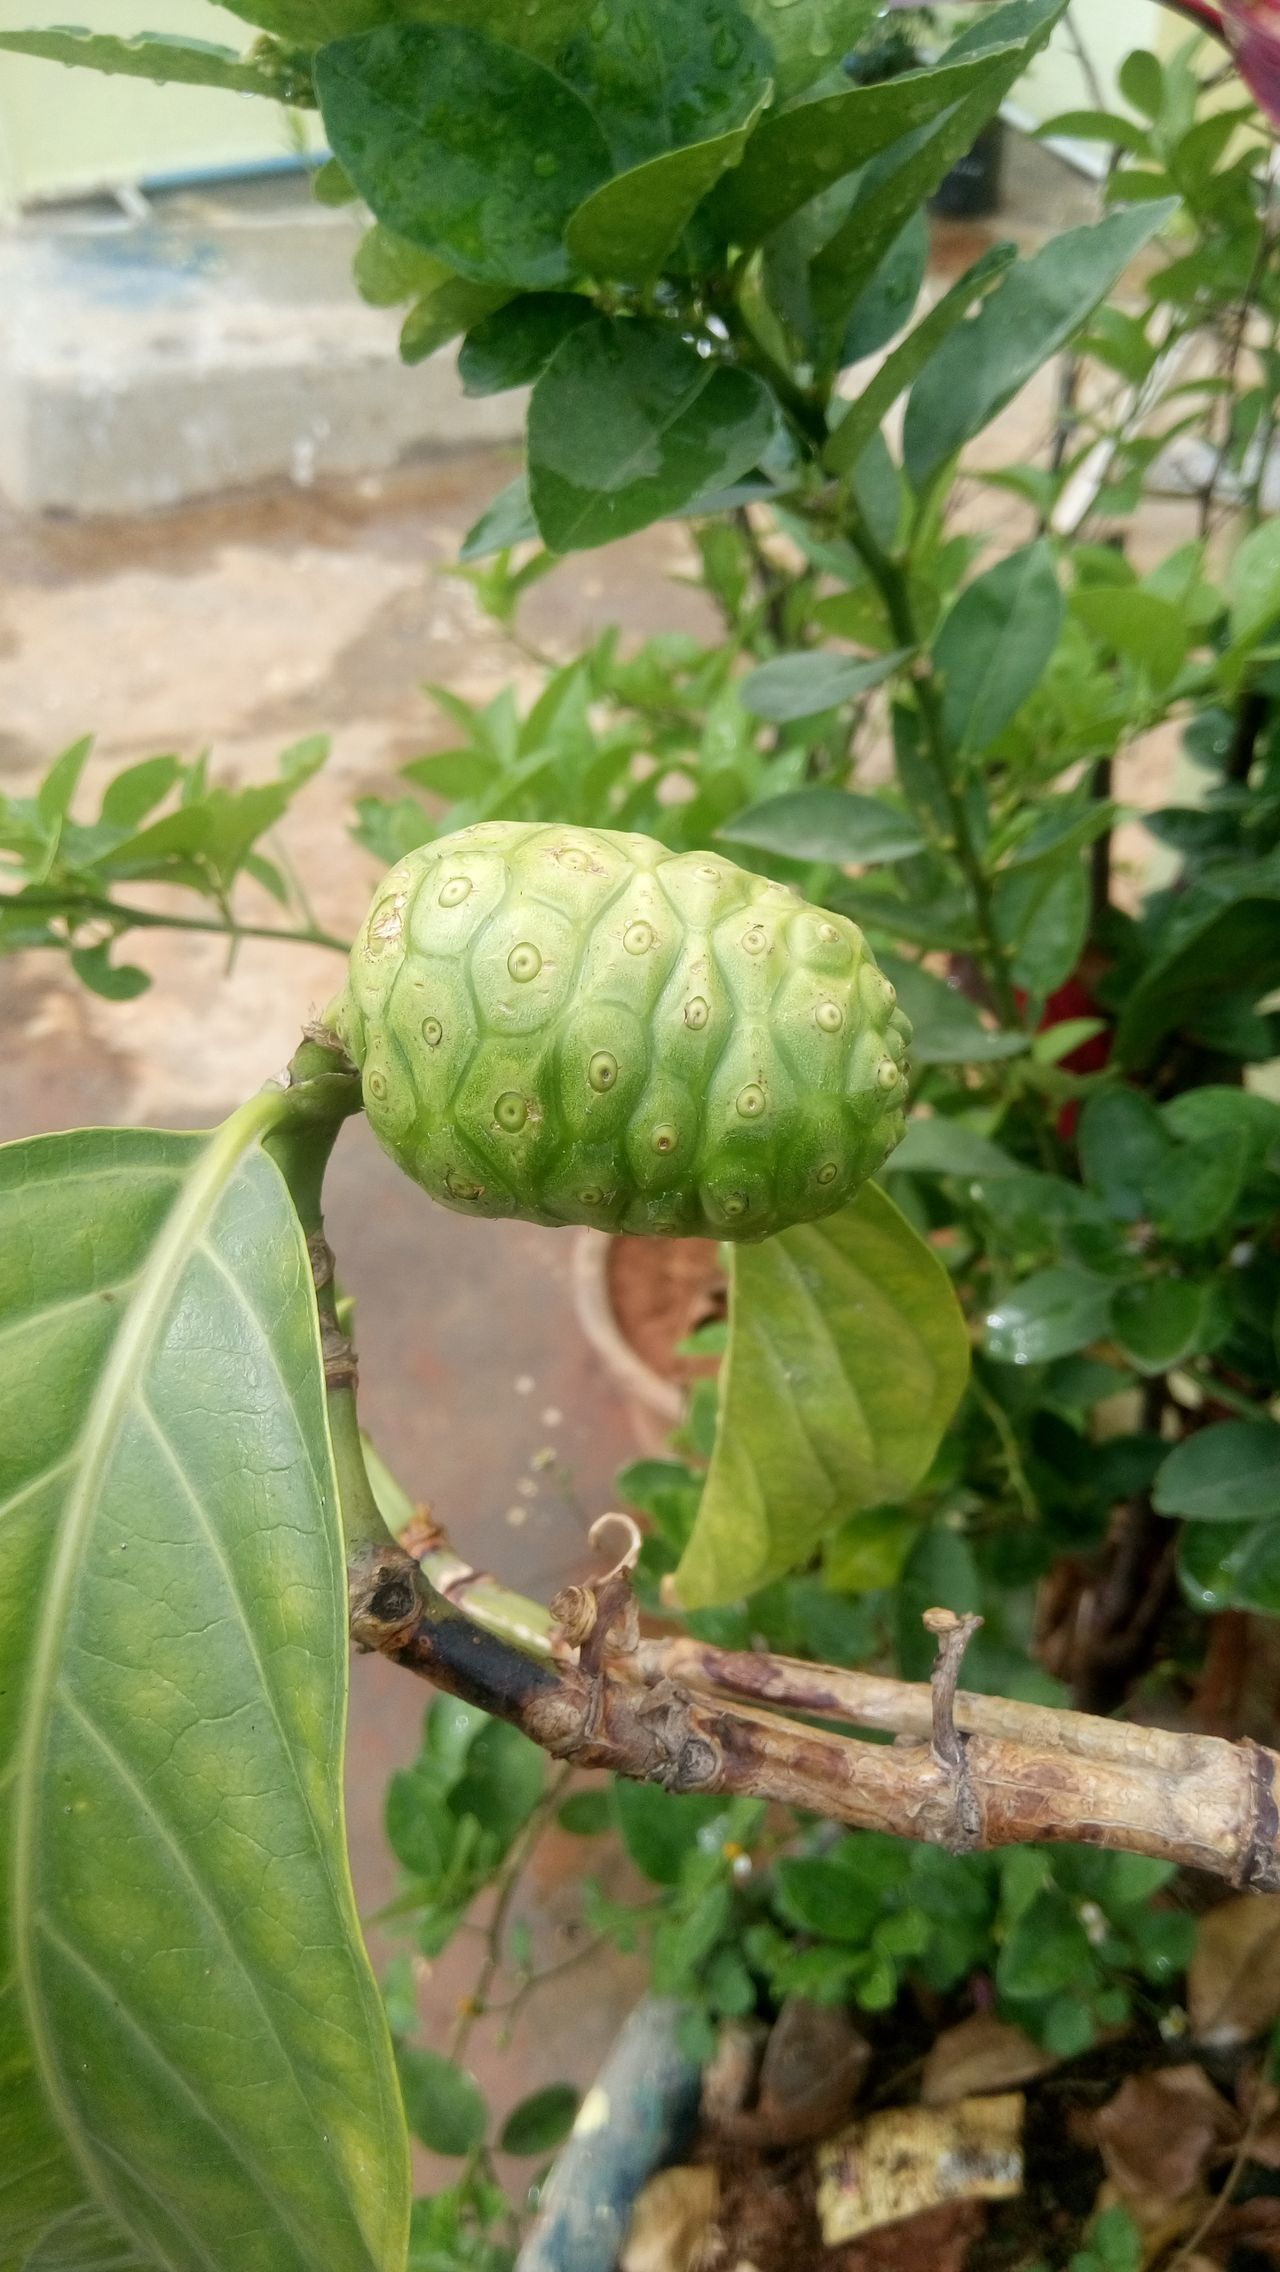 Noni fruit Leaf Green Color Animals In The Wild Animal Themes Nature Plant Close-up Animal Wildlife One Animal No People Growth Day Outdoors Beauty In Nature Insect Freshness Chameleon EyeEm Nature Lover EyeEm Fruit Collection Fruits And Vegetables